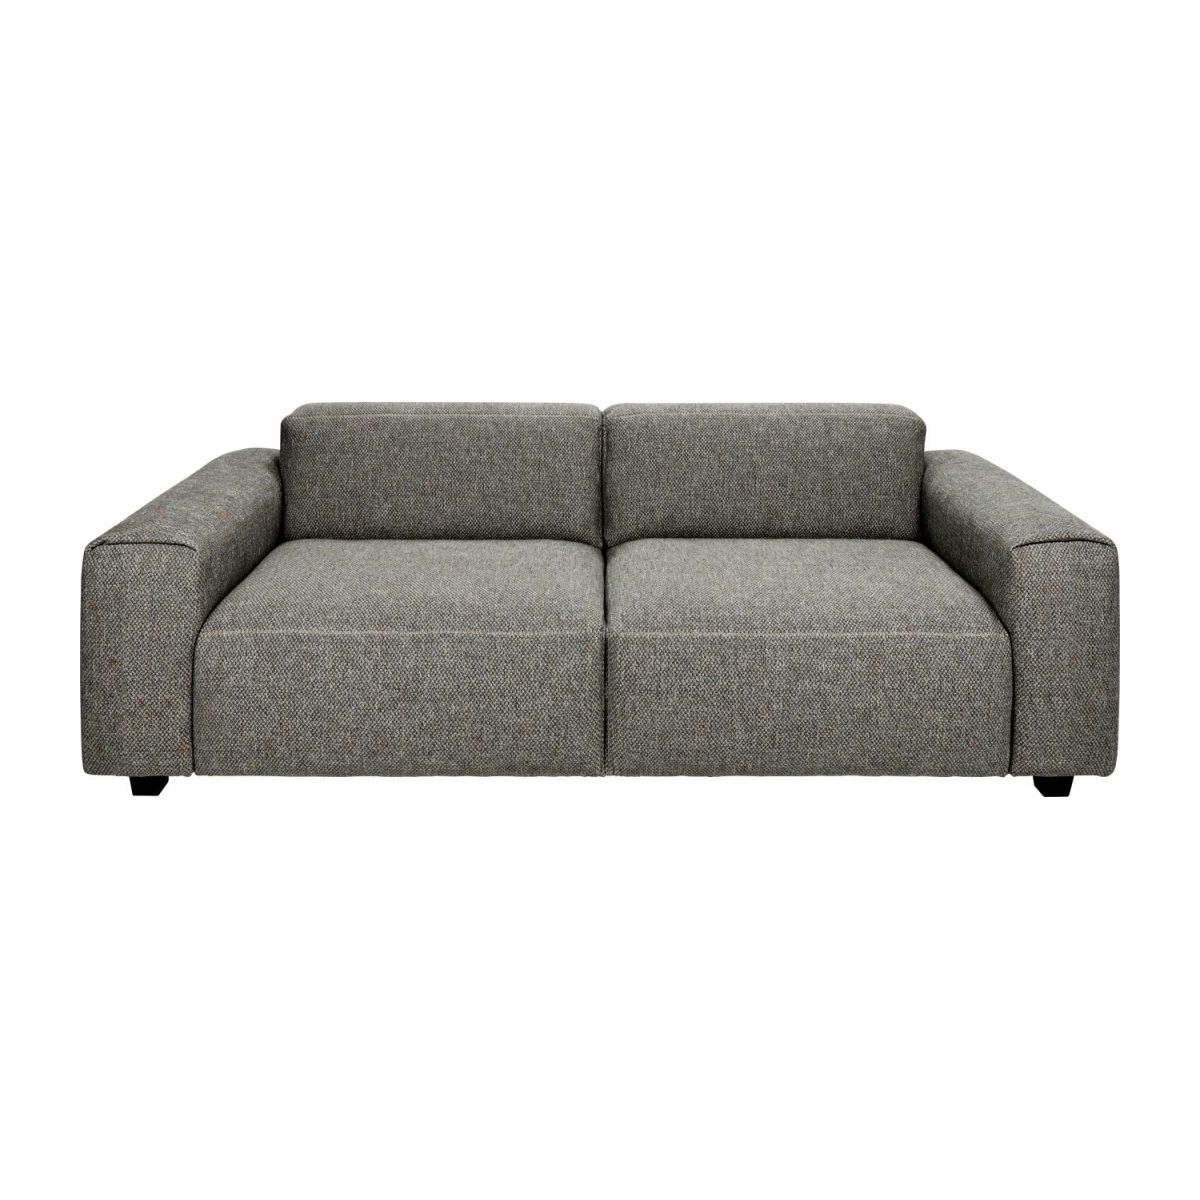 3 seater sofa in Bellagio fabric, night black n°3